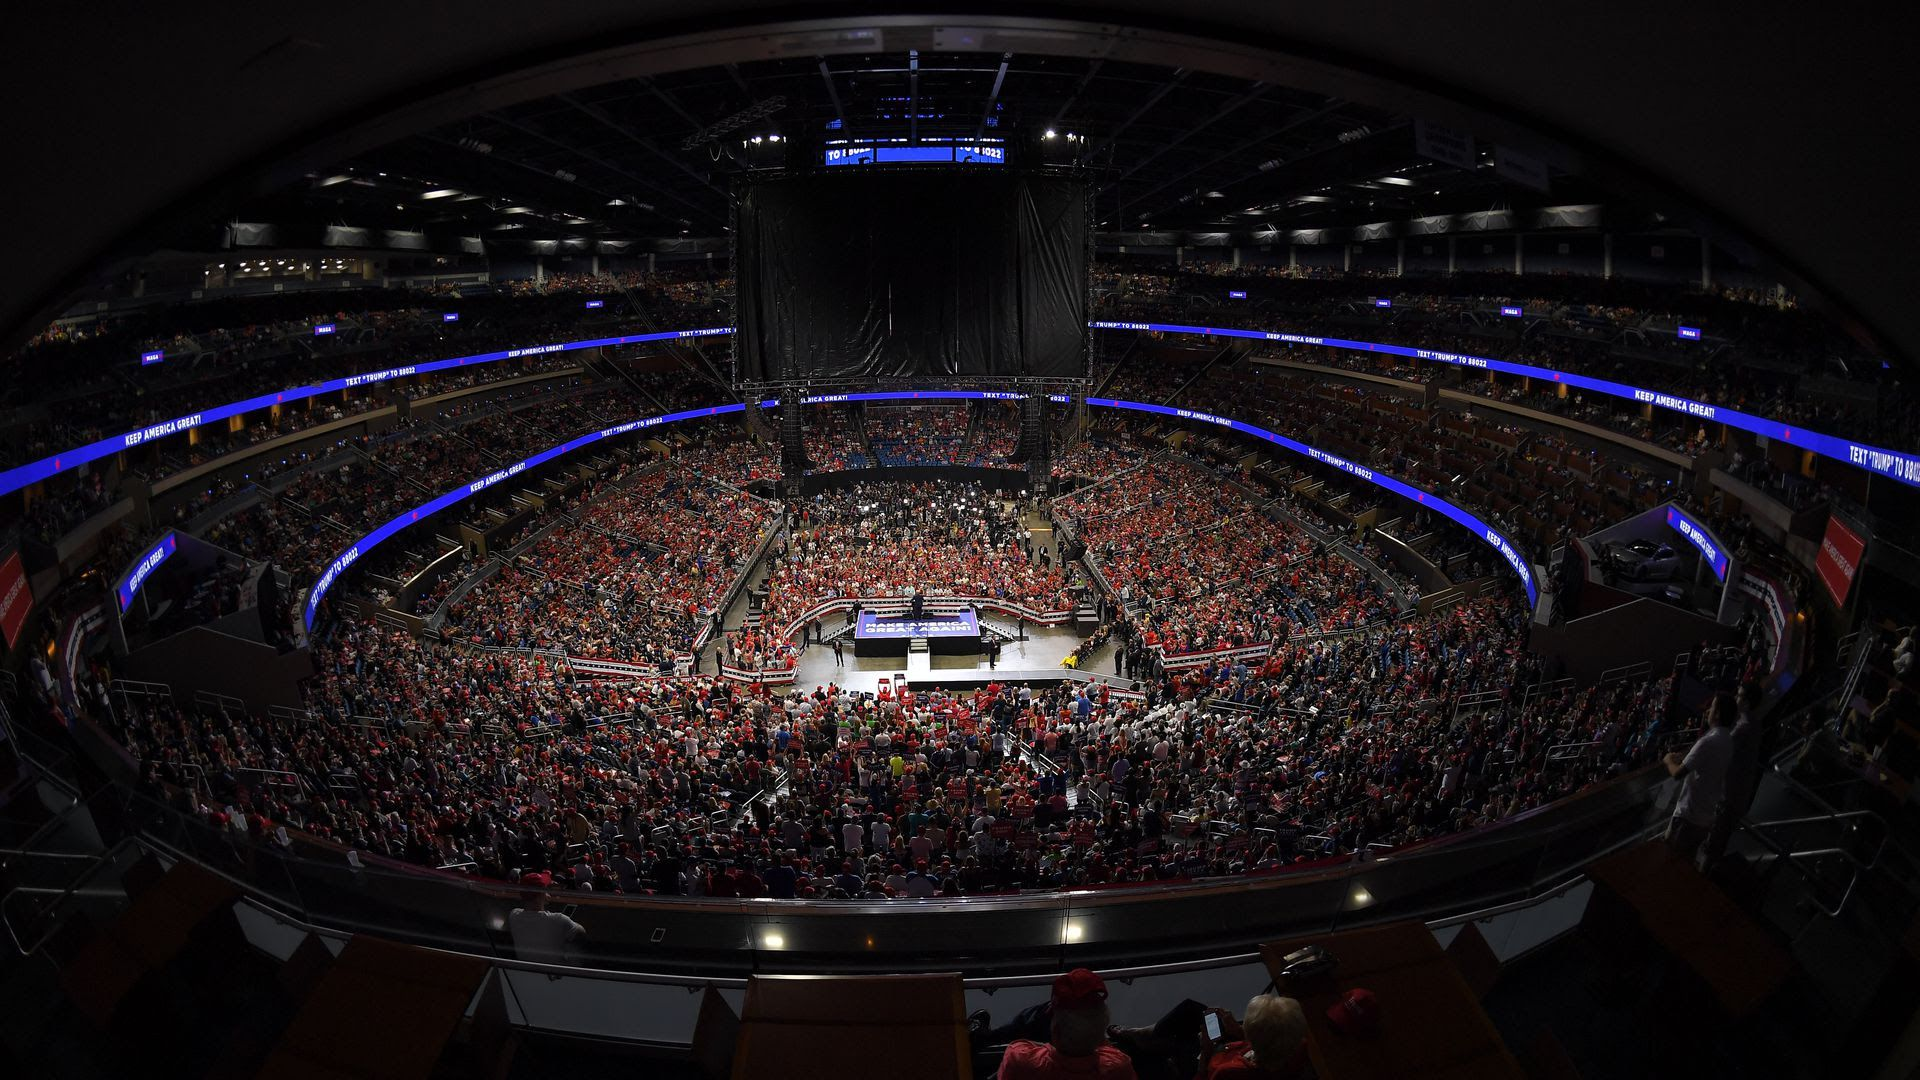 Trump speaks at the Amway Center in Orlando. (Photo: Mandel Ngan/AFP/Getty Images)